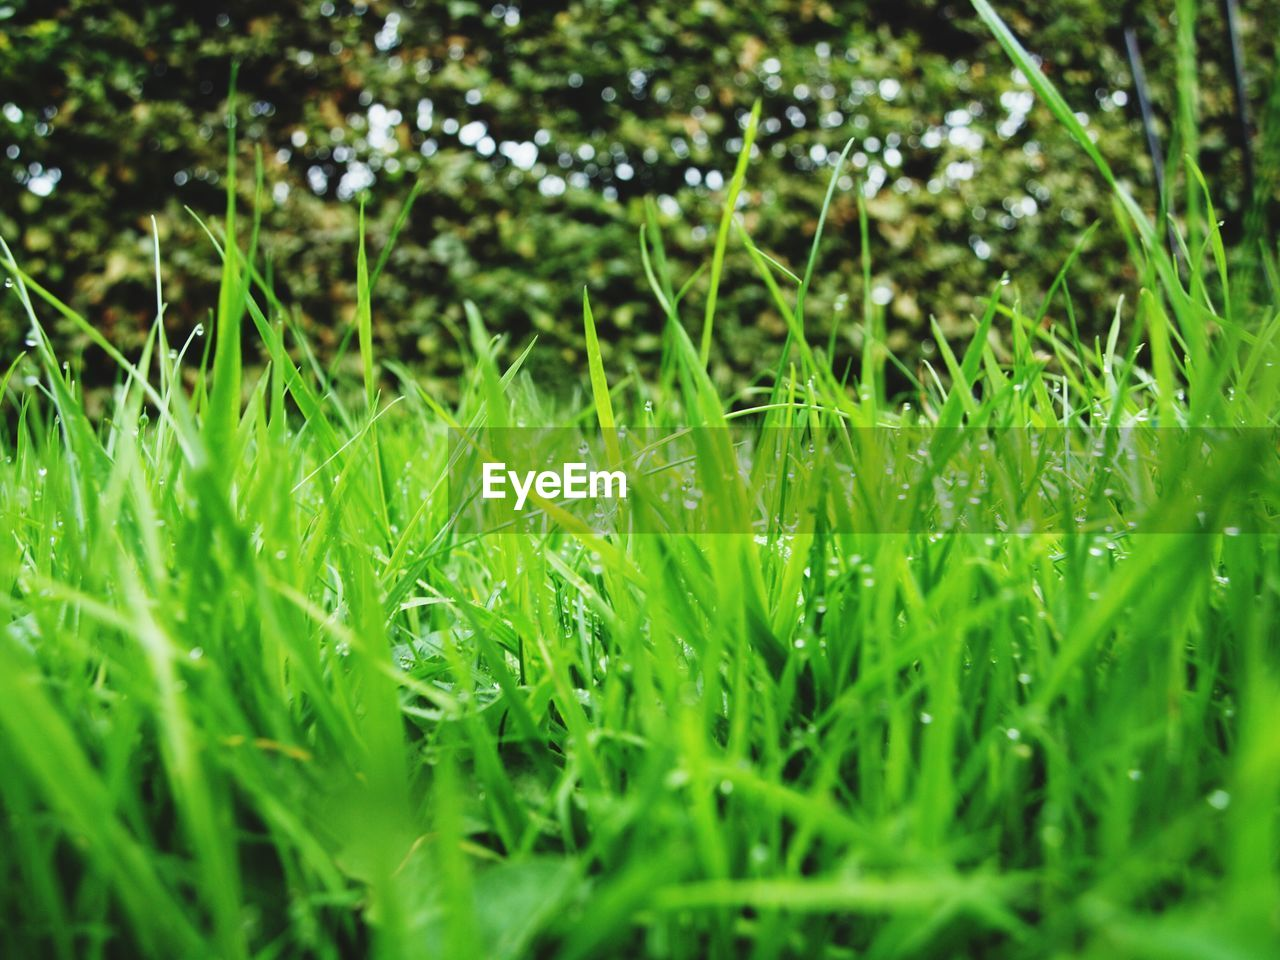 plant, green color, grass, growth, selective focus, nature, beauty in nature, land, field, blade of grass, day, no people, tranquility, lush foliage, foliage, close-up, outdoors, wet, backgrounds, freshness, dew, surface level, spring, raindrop